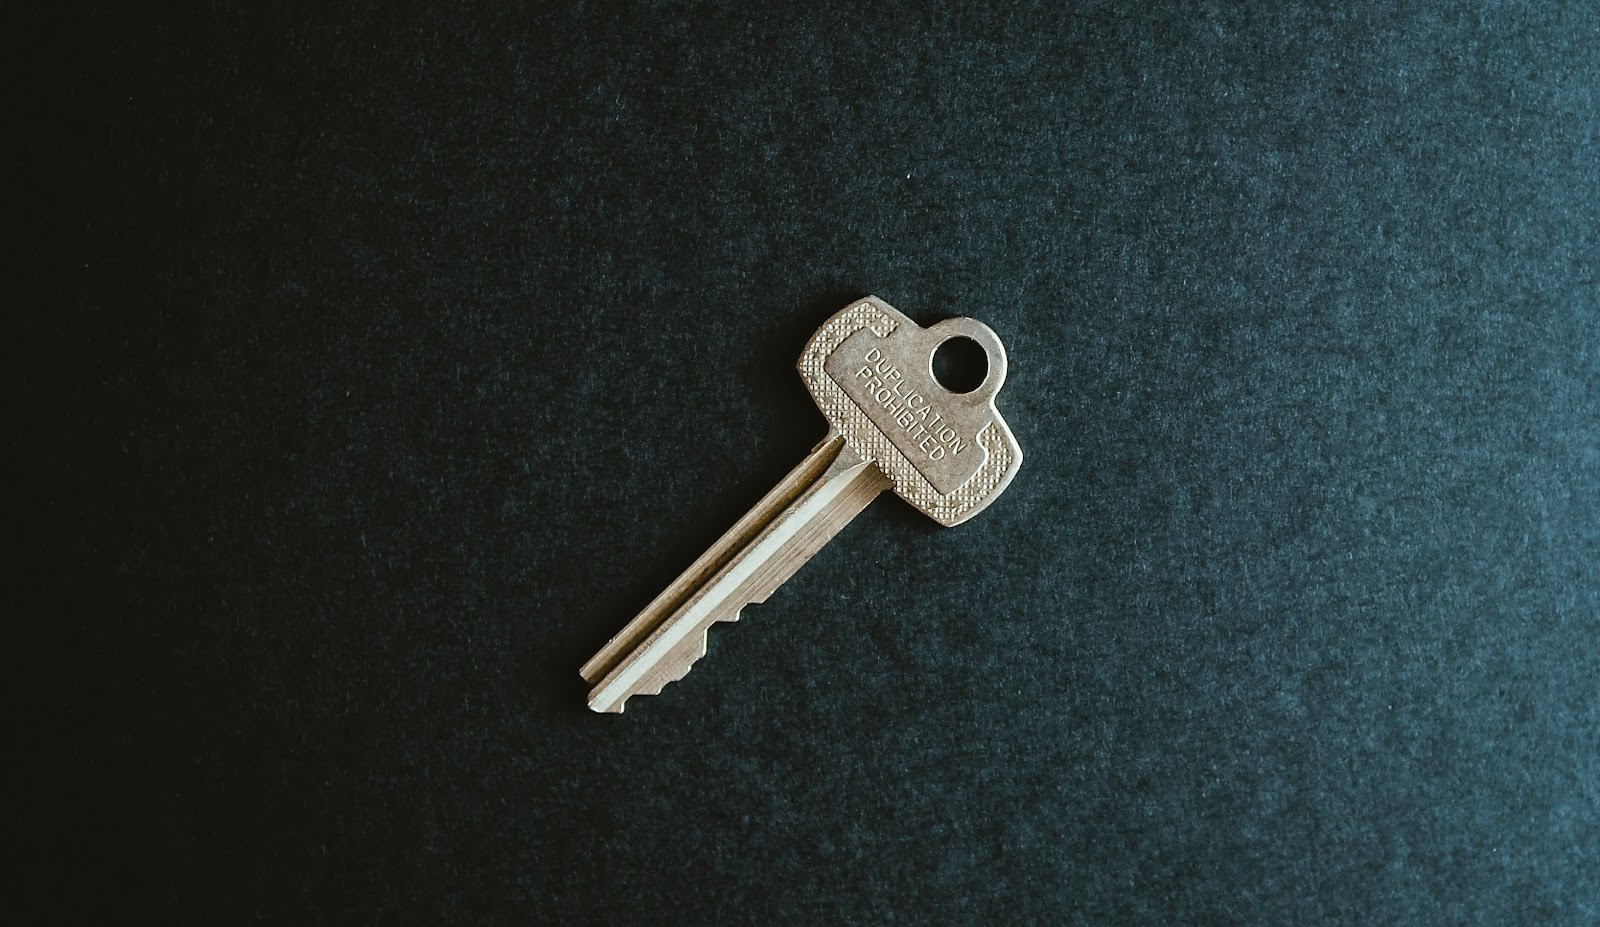 An image of a key.